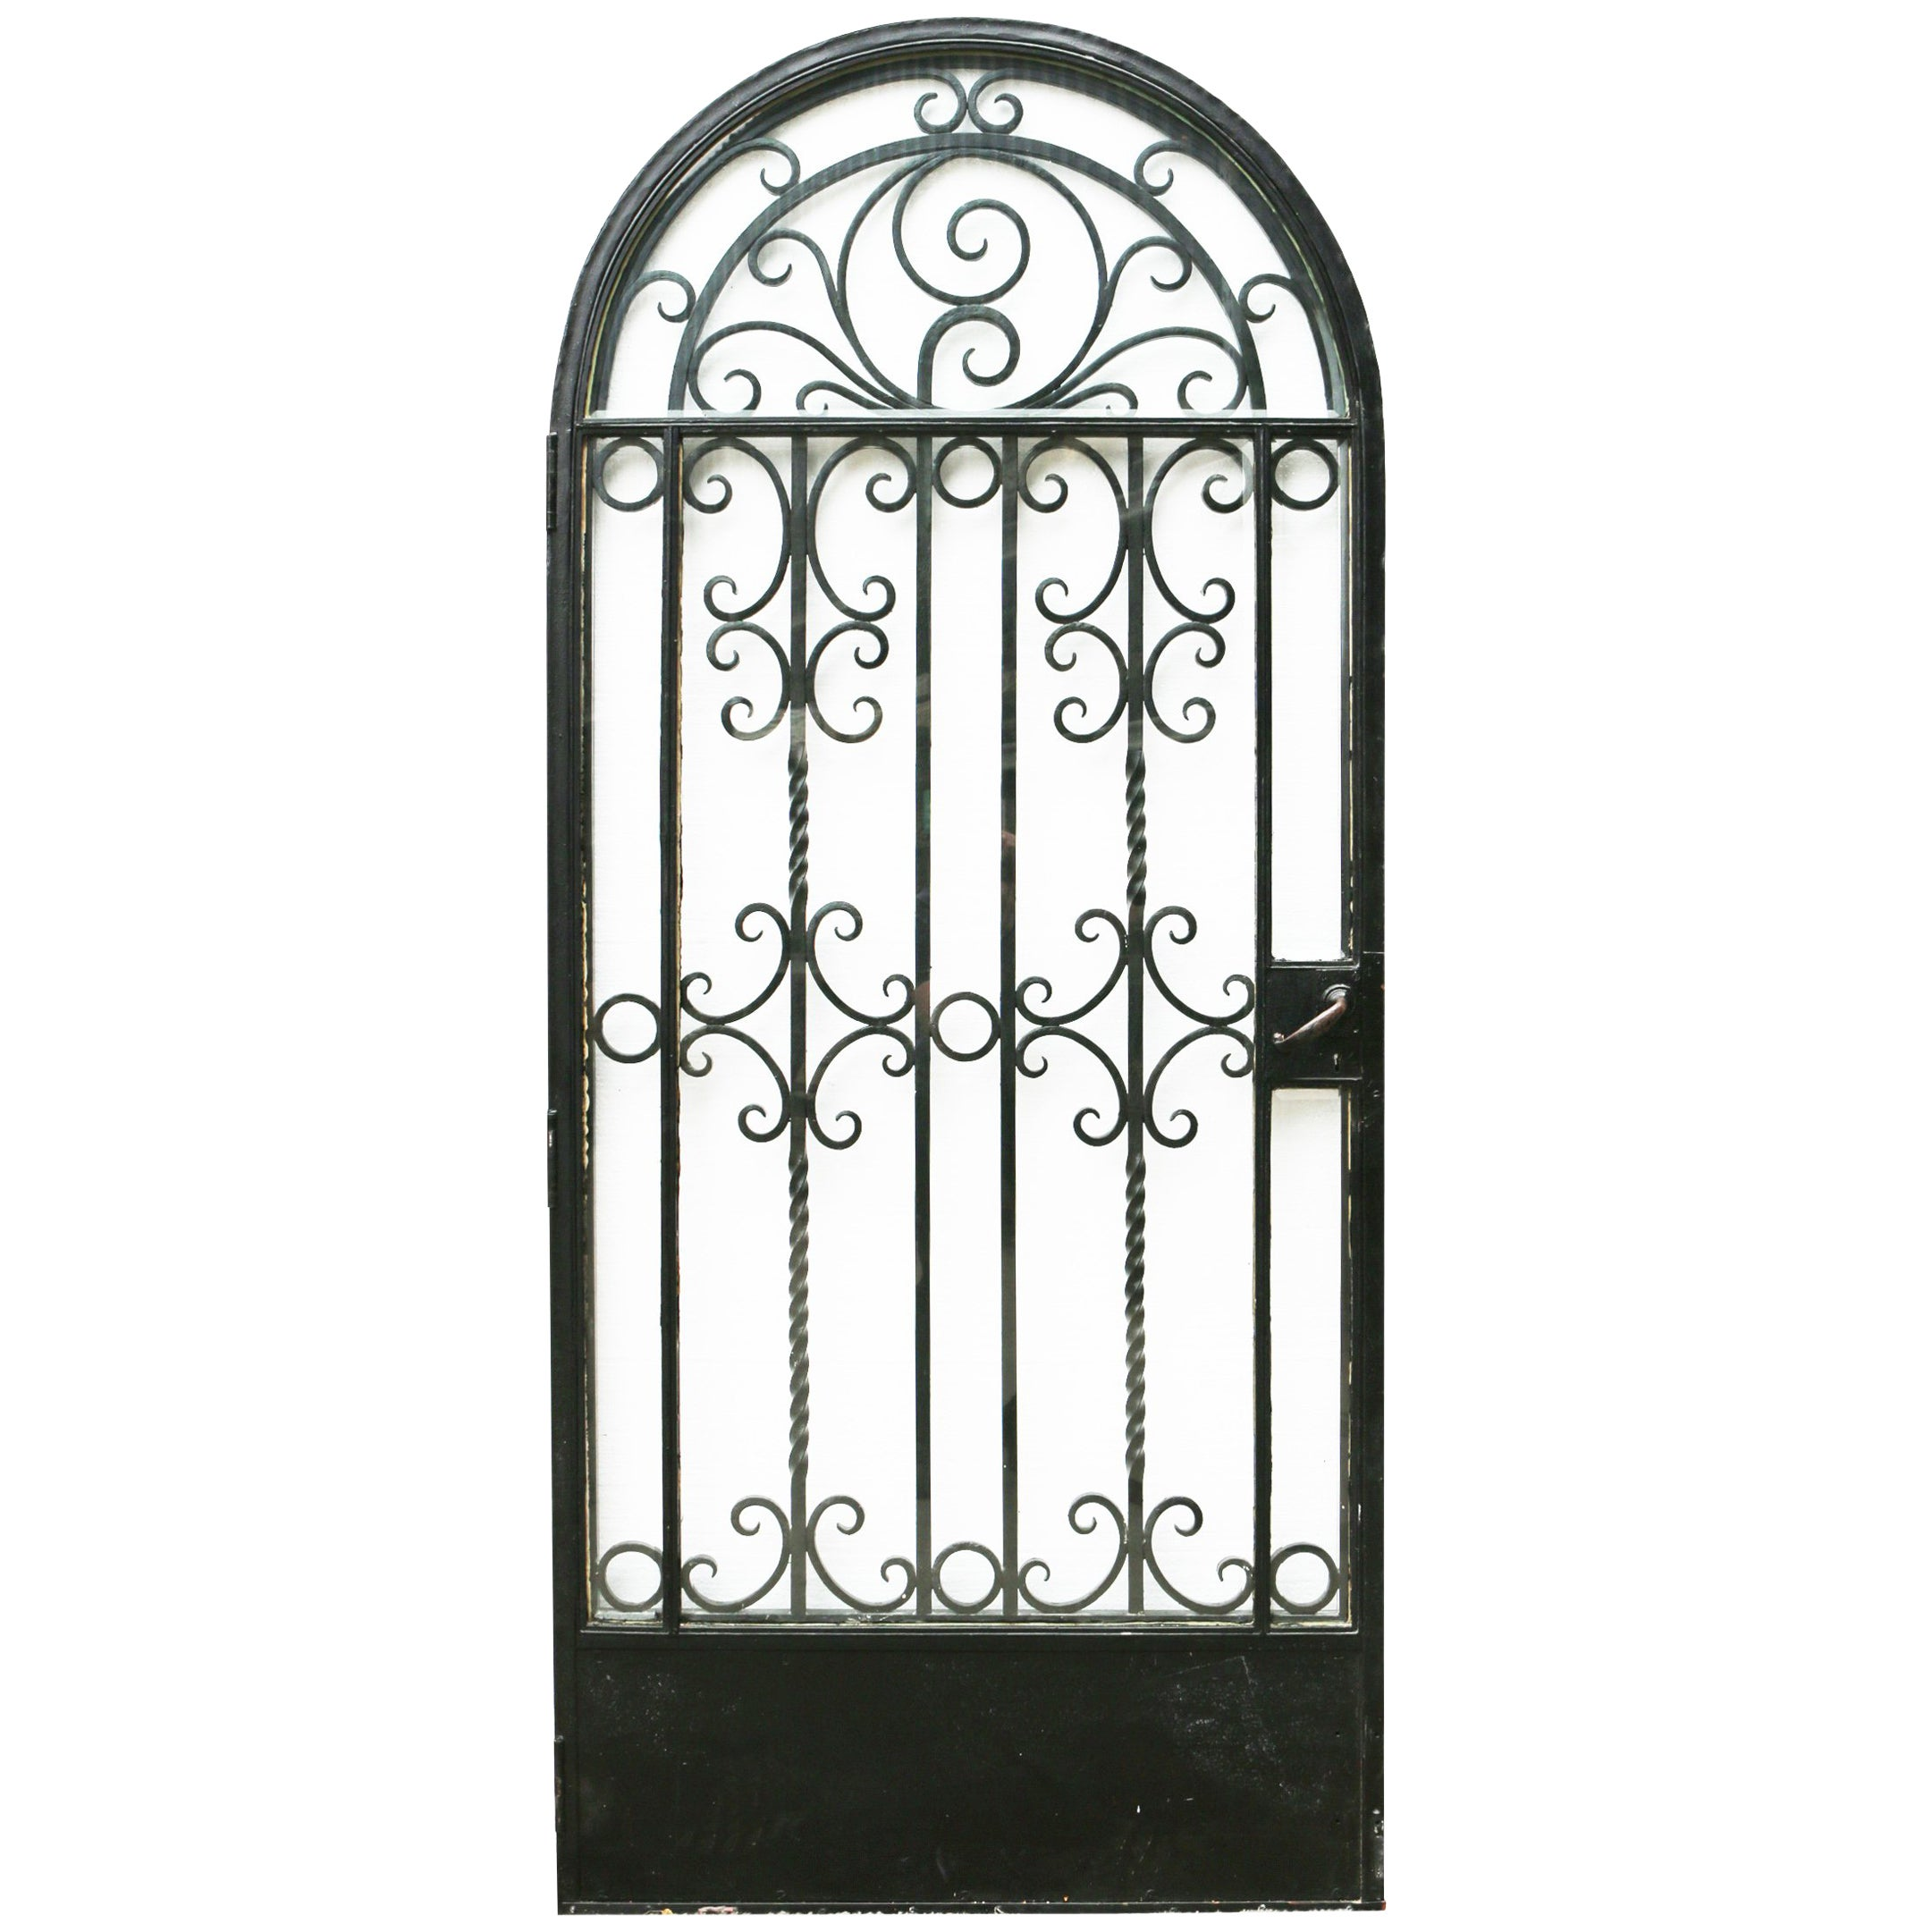 1930s Wrought Iron Arched Gate or Door